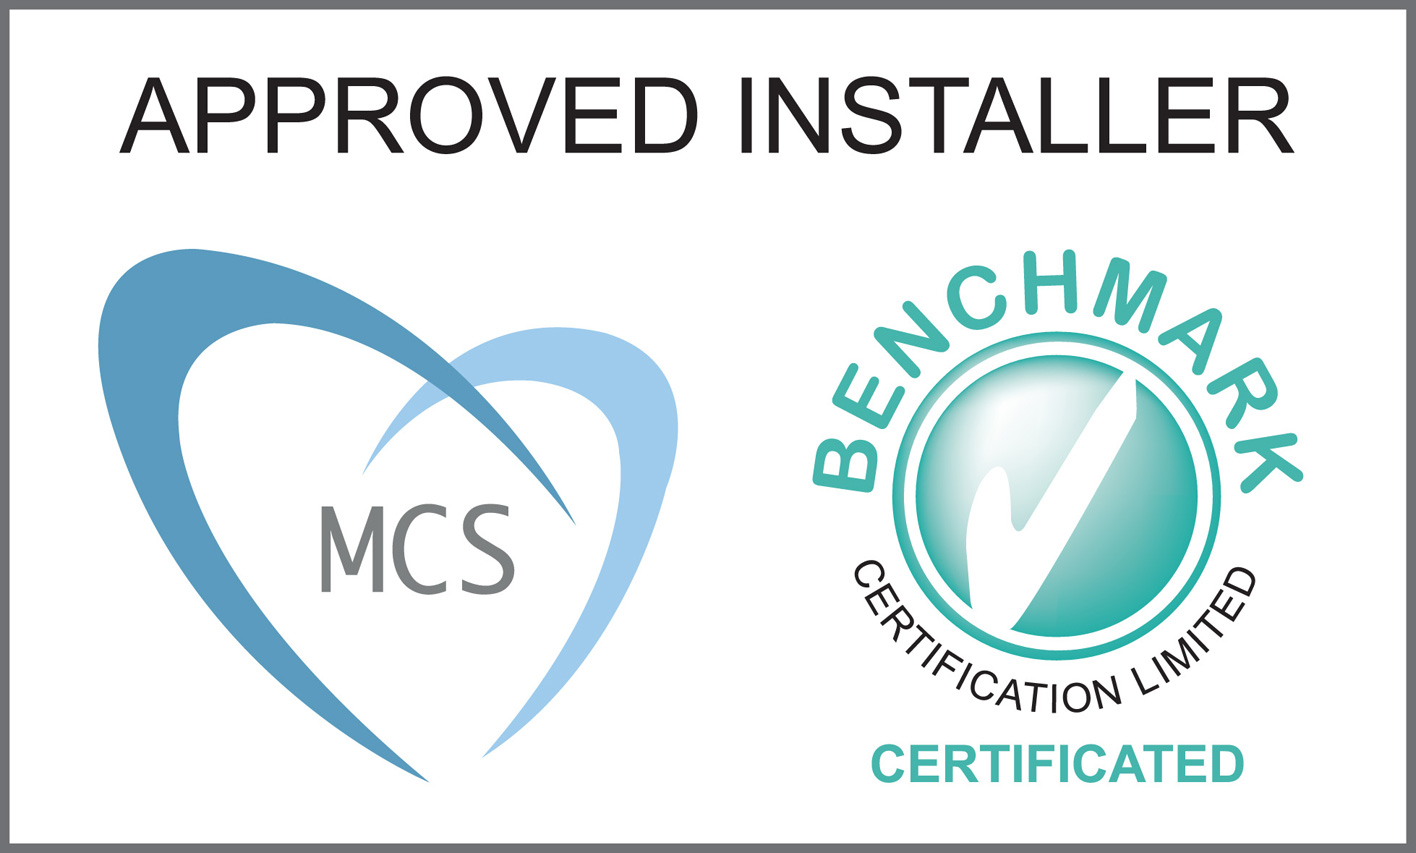 Solar Voltaics Ltd Quality Assurance Accredited By Mcs